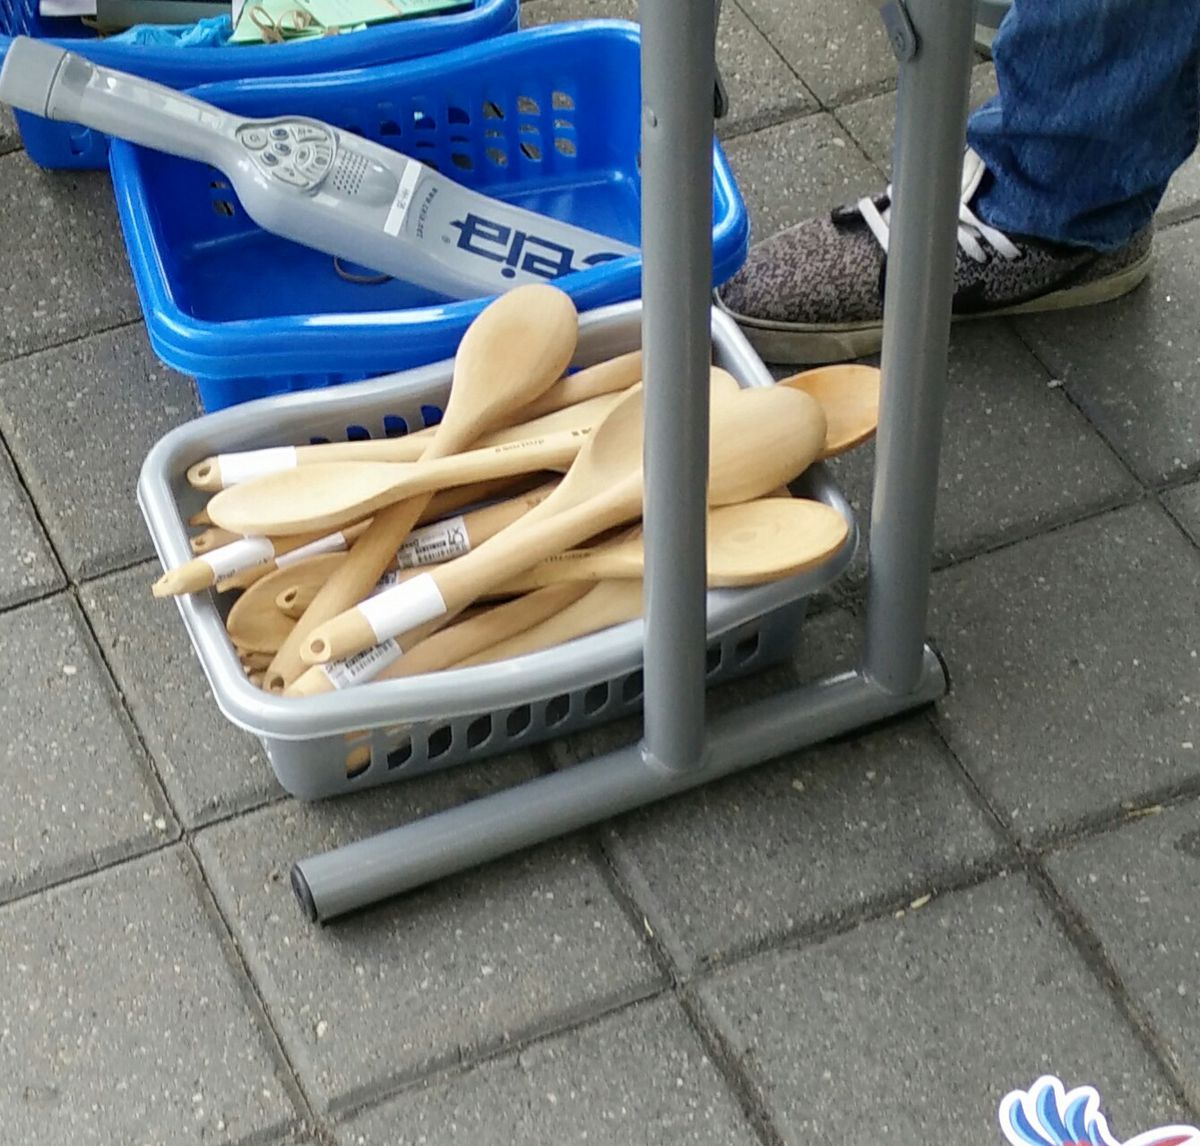 Small basket filled with wooden spoons